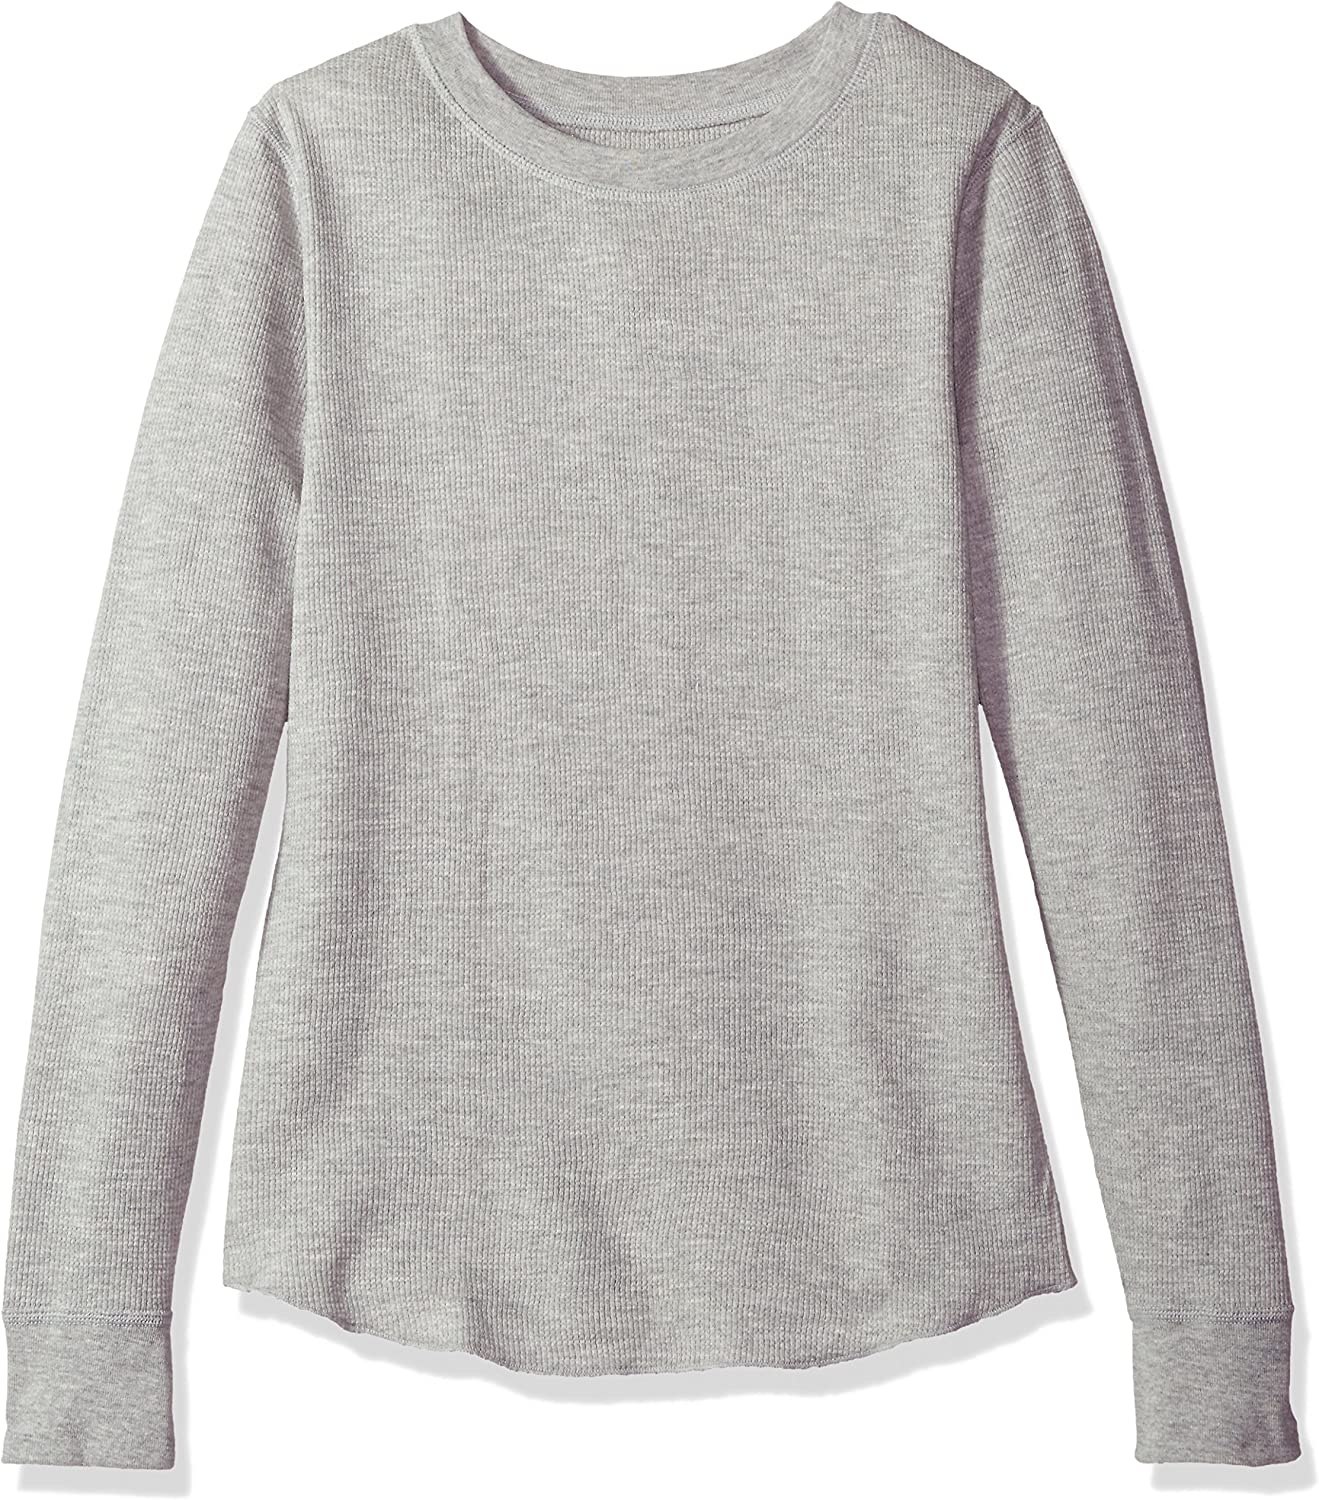 Hanes Plus Size Women's Ultimate Thermal Crew